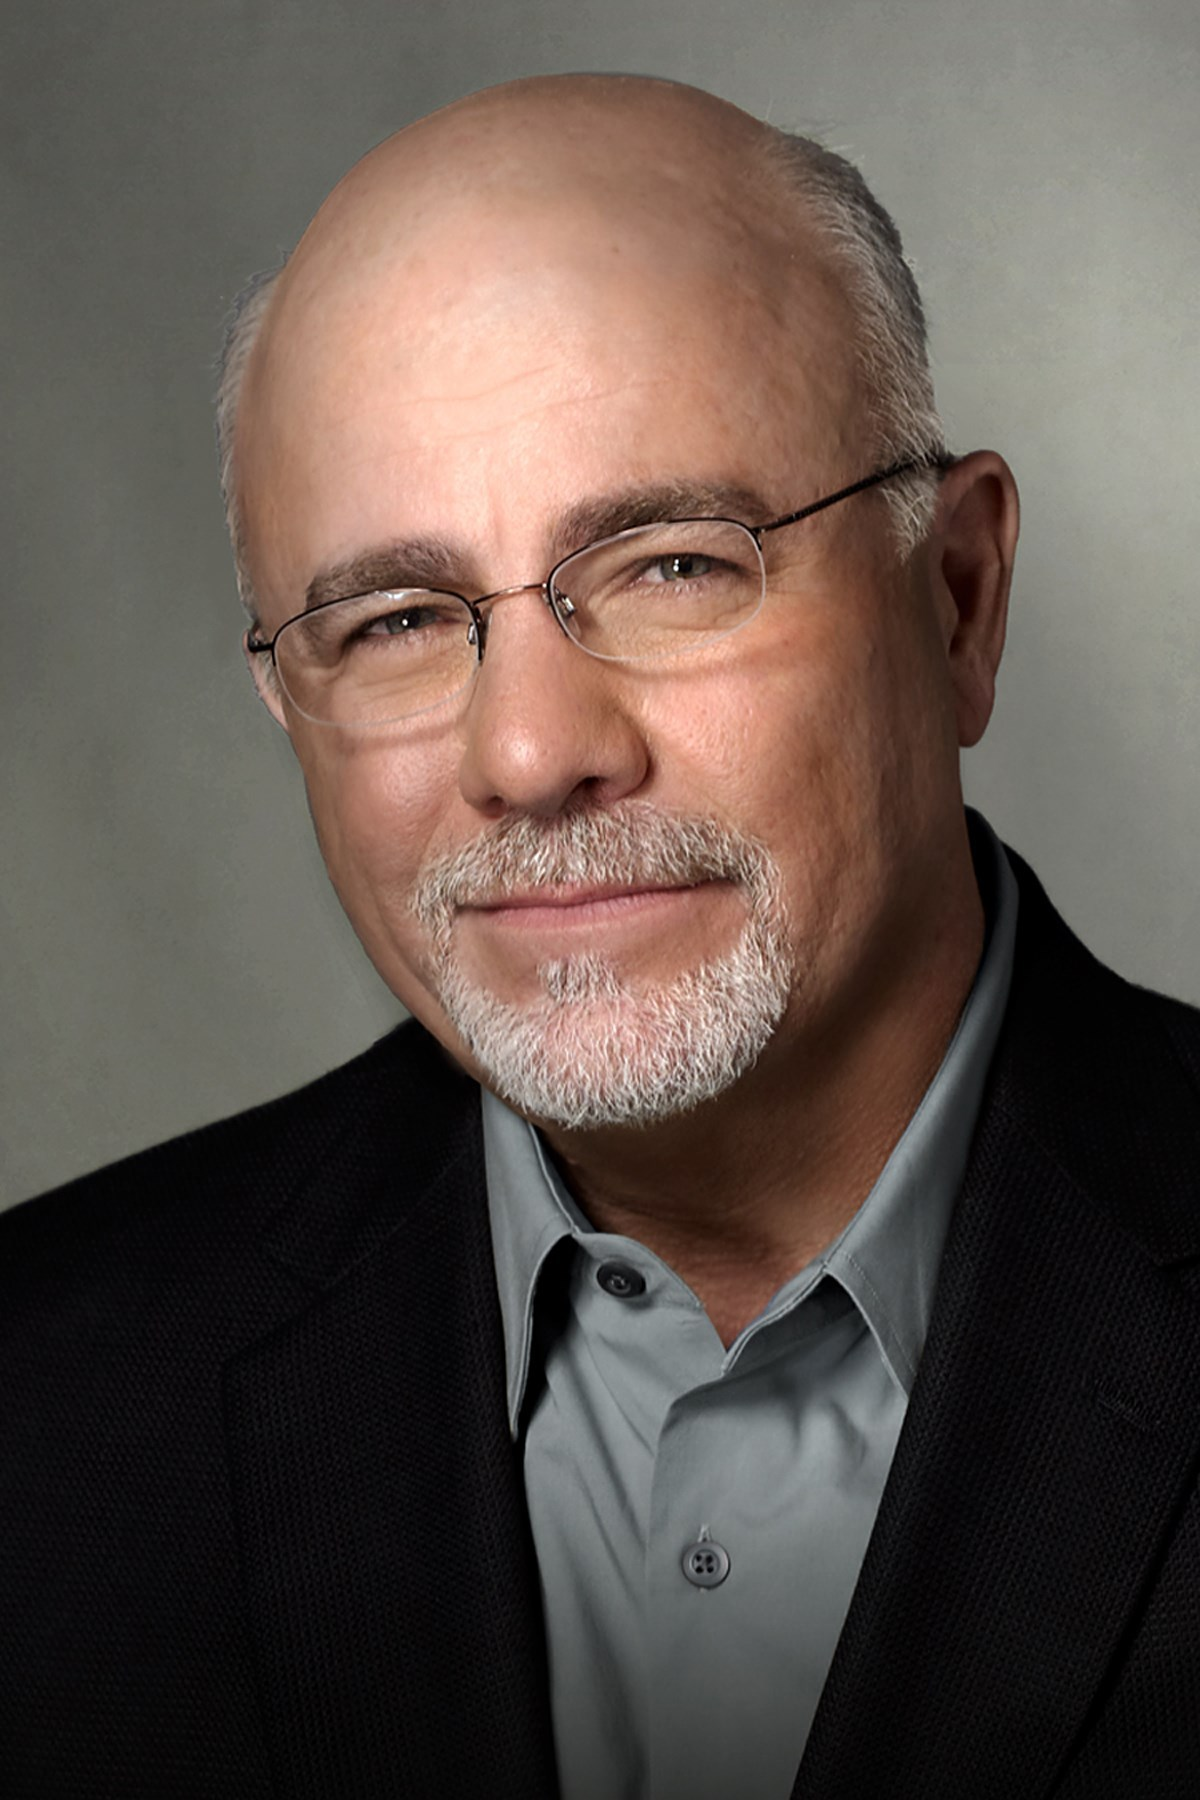 dave ramsey Why dave ramsey is wrong about whole life may 2012 lmr 6 by robert p murphy why dave ramsey is about whole life insurance wrong september 2012.